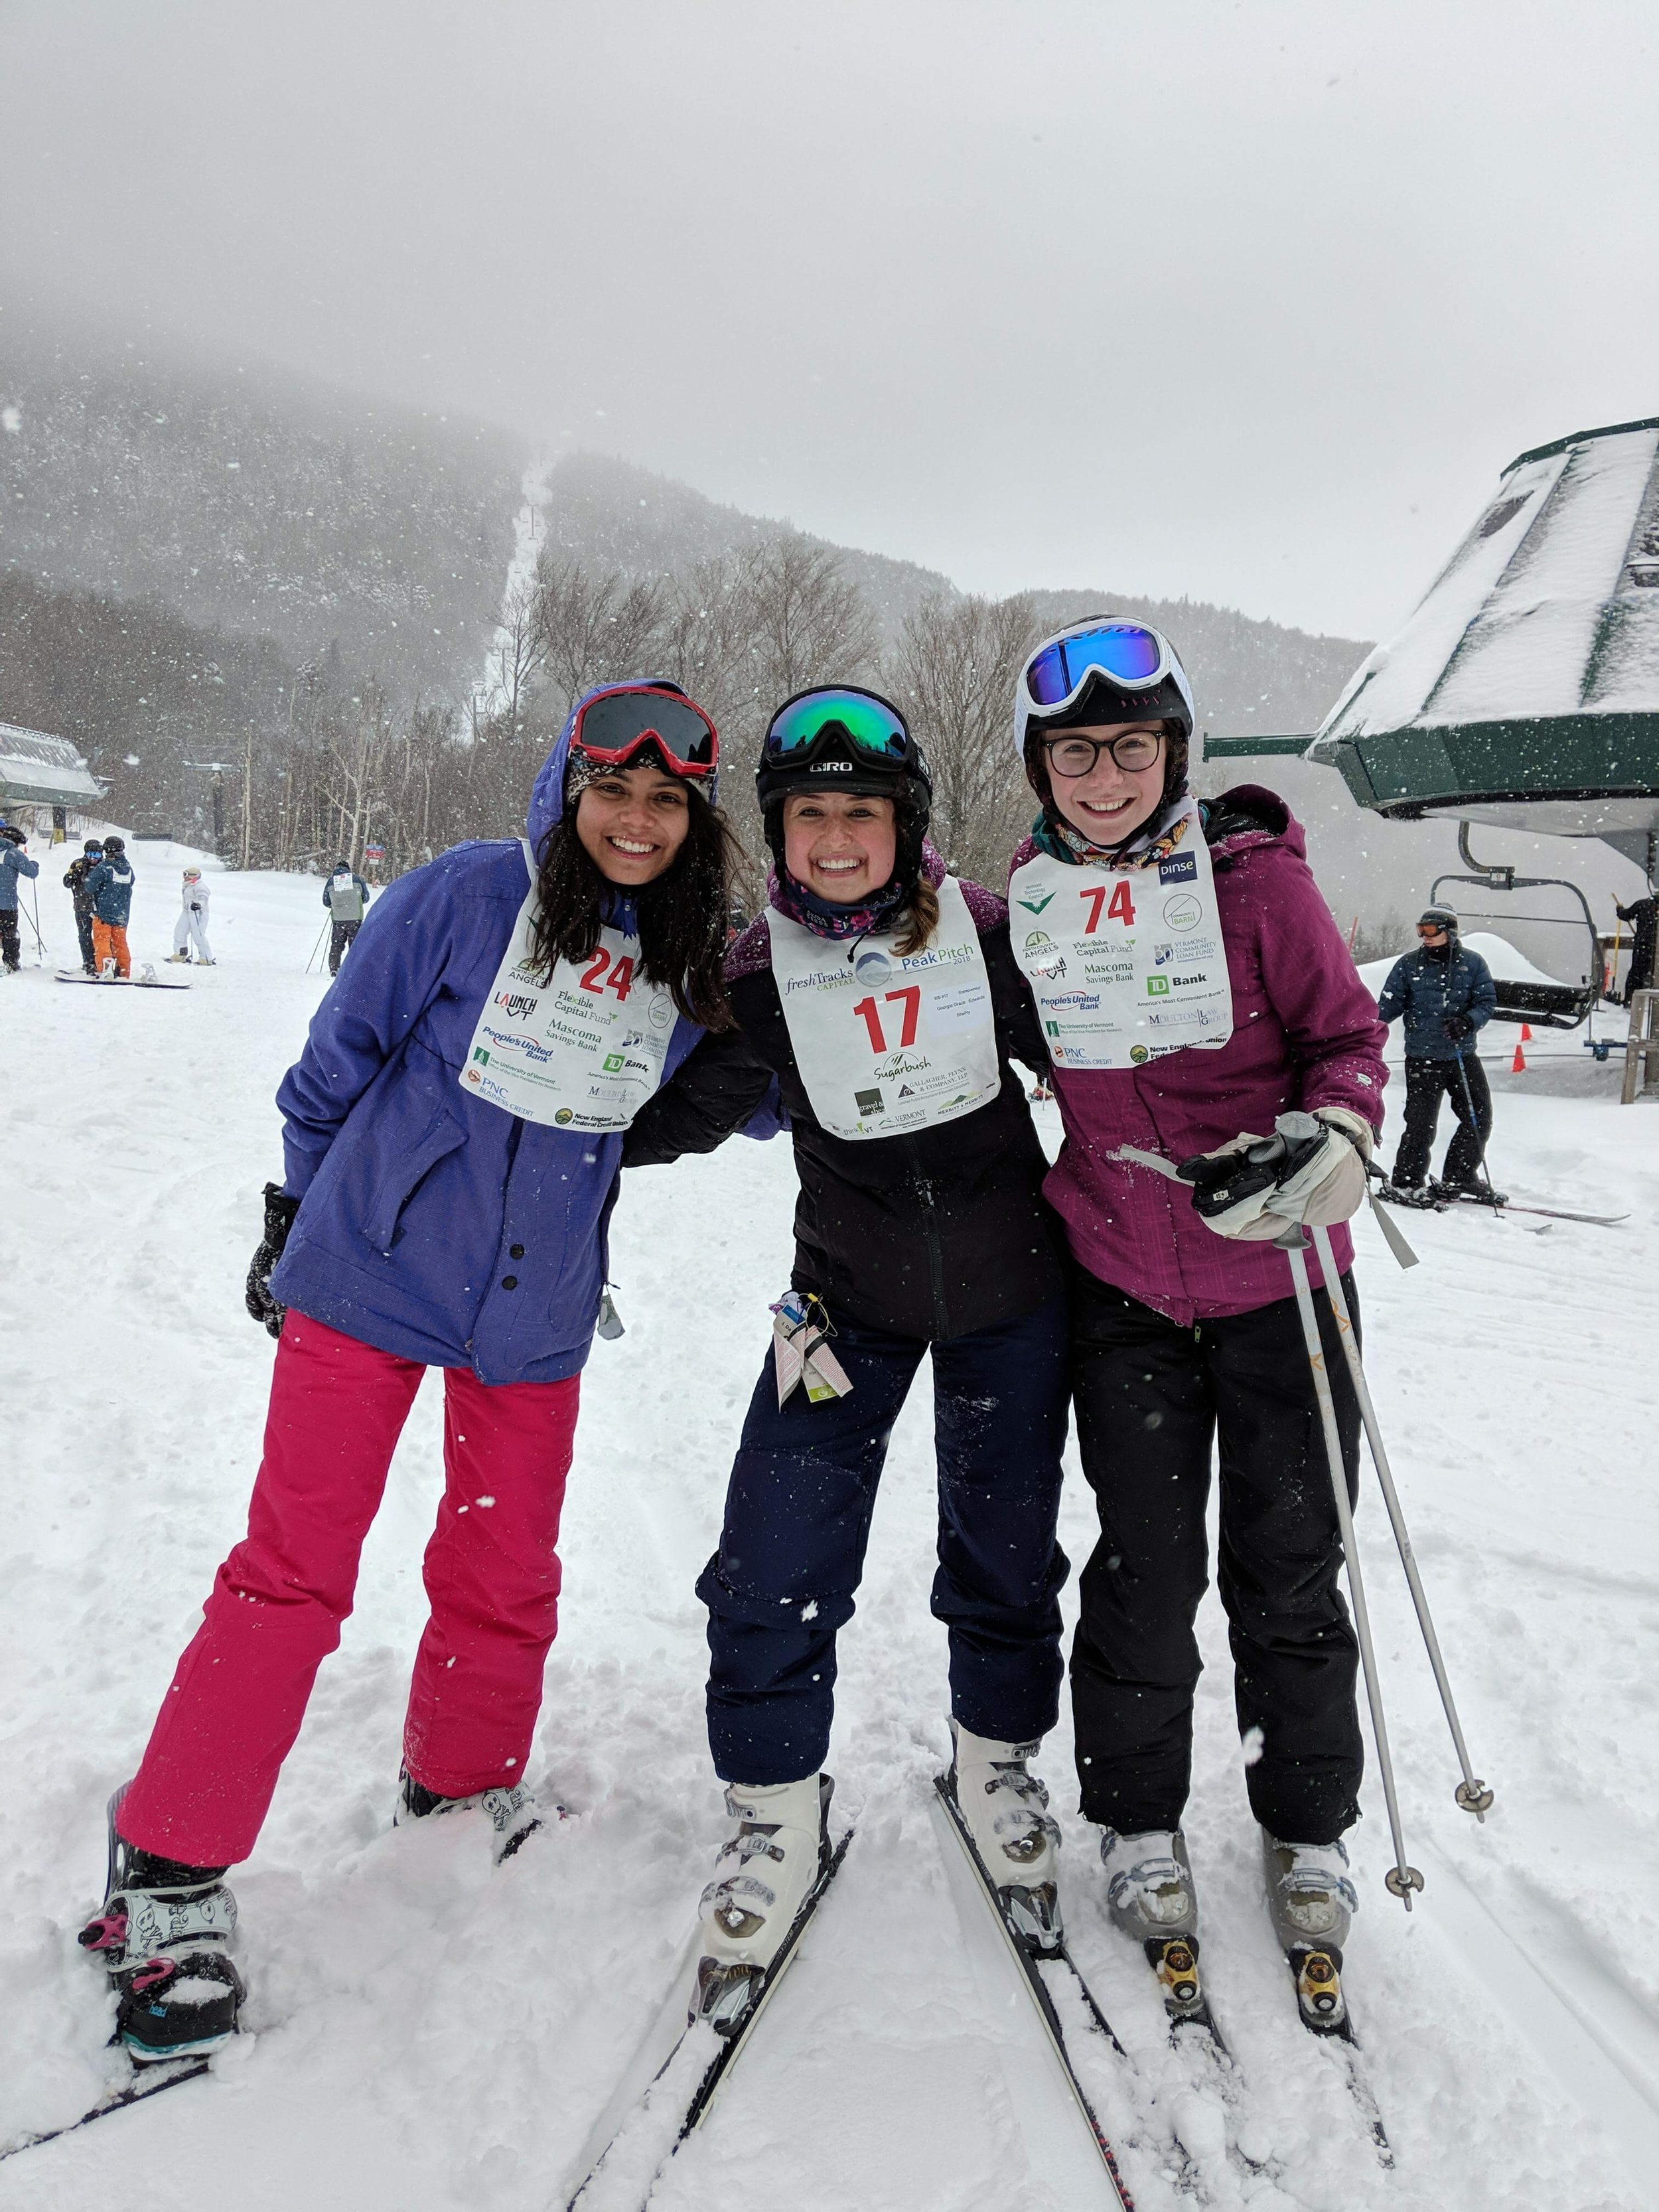 The founding team representing SheFly at Peak Pitch in Sugarbush, Vermont.